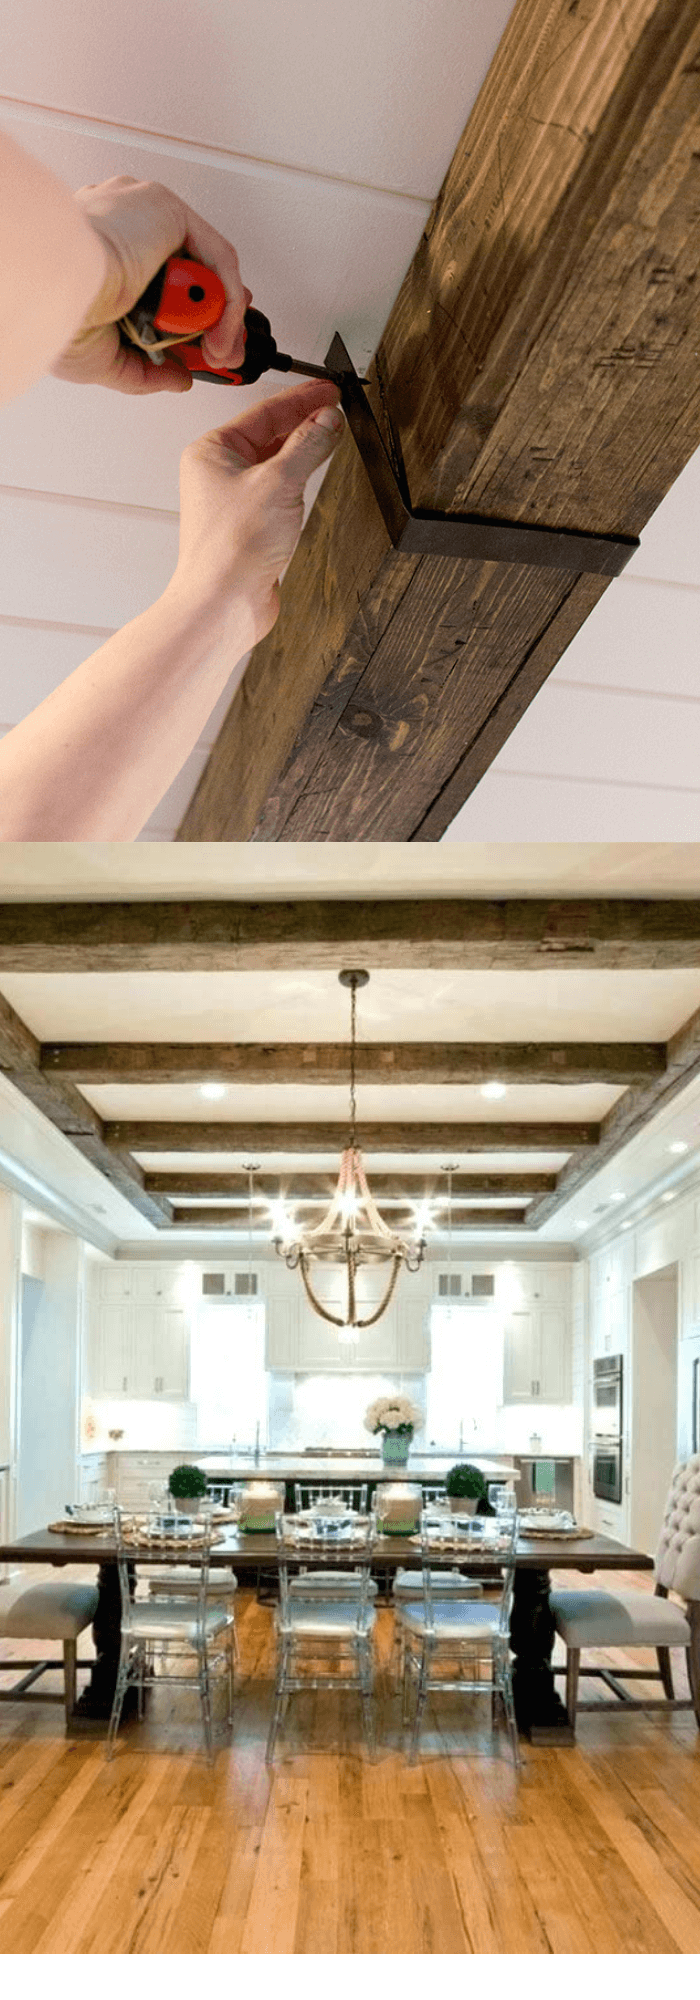 Kitchen Decor Projects With Reclaimed Wood DIY Wood Beams